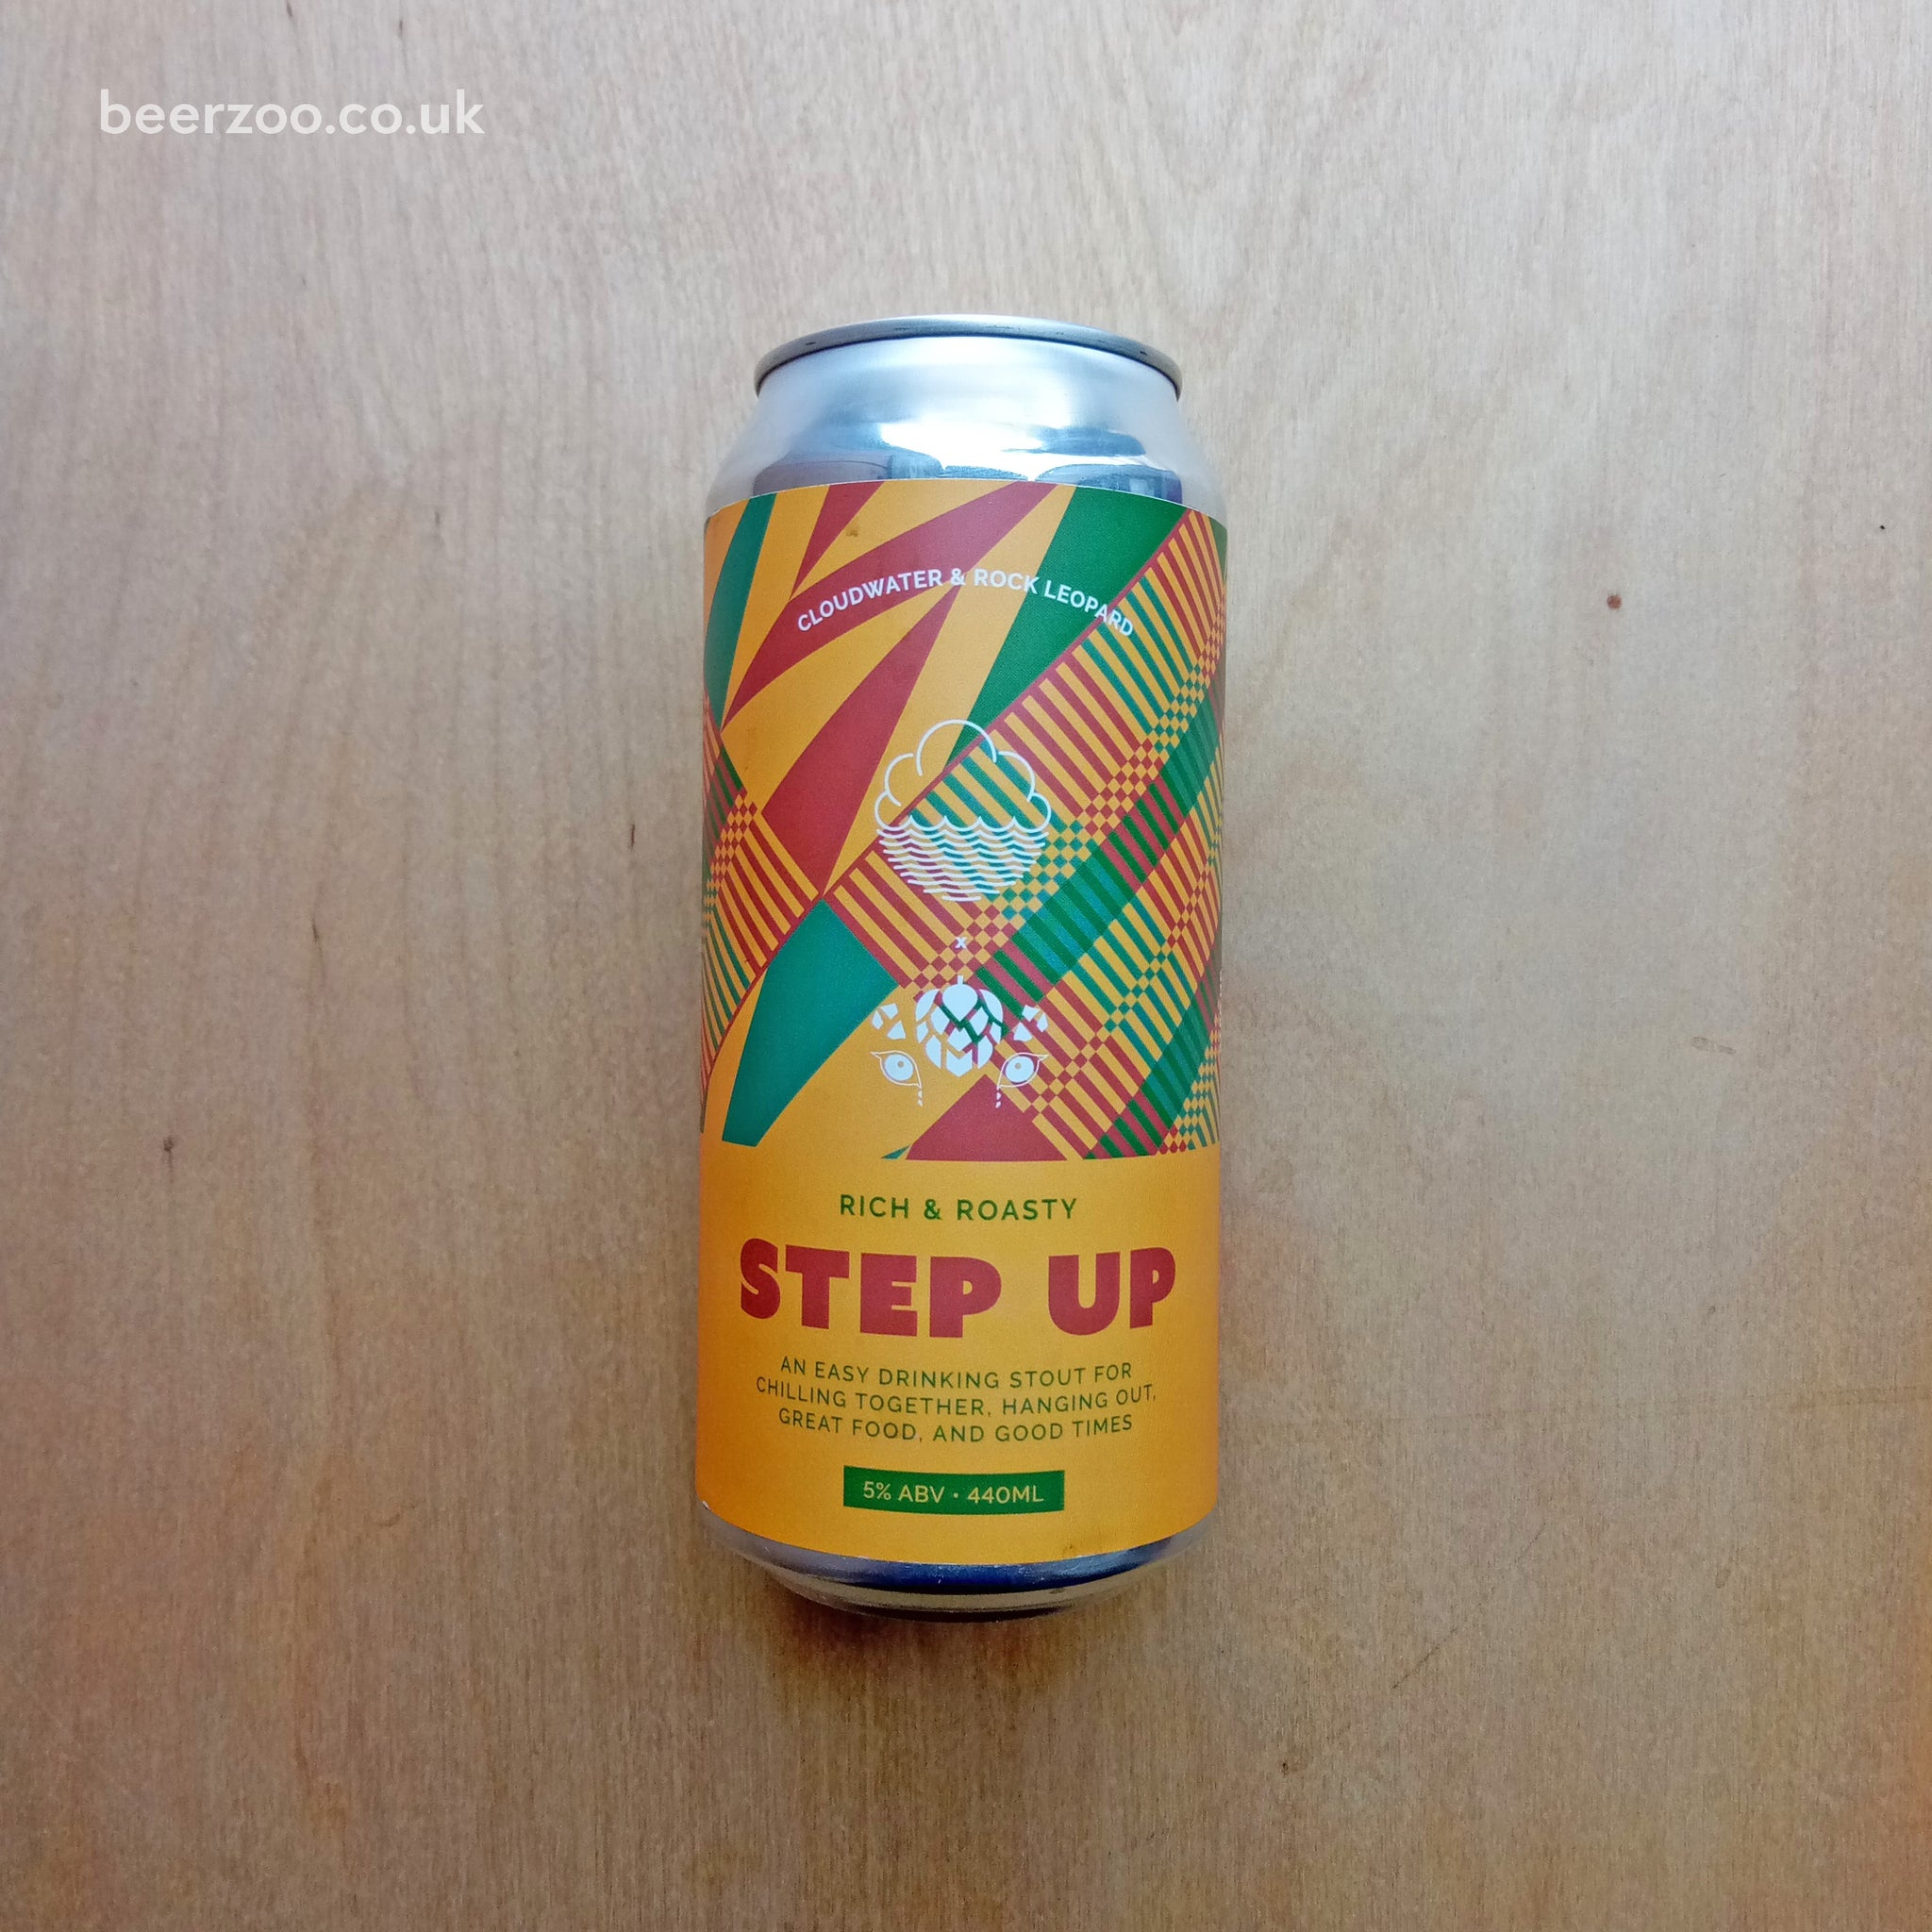 Rock Leopard / Cloudwater - Step Up 5% (440ml)